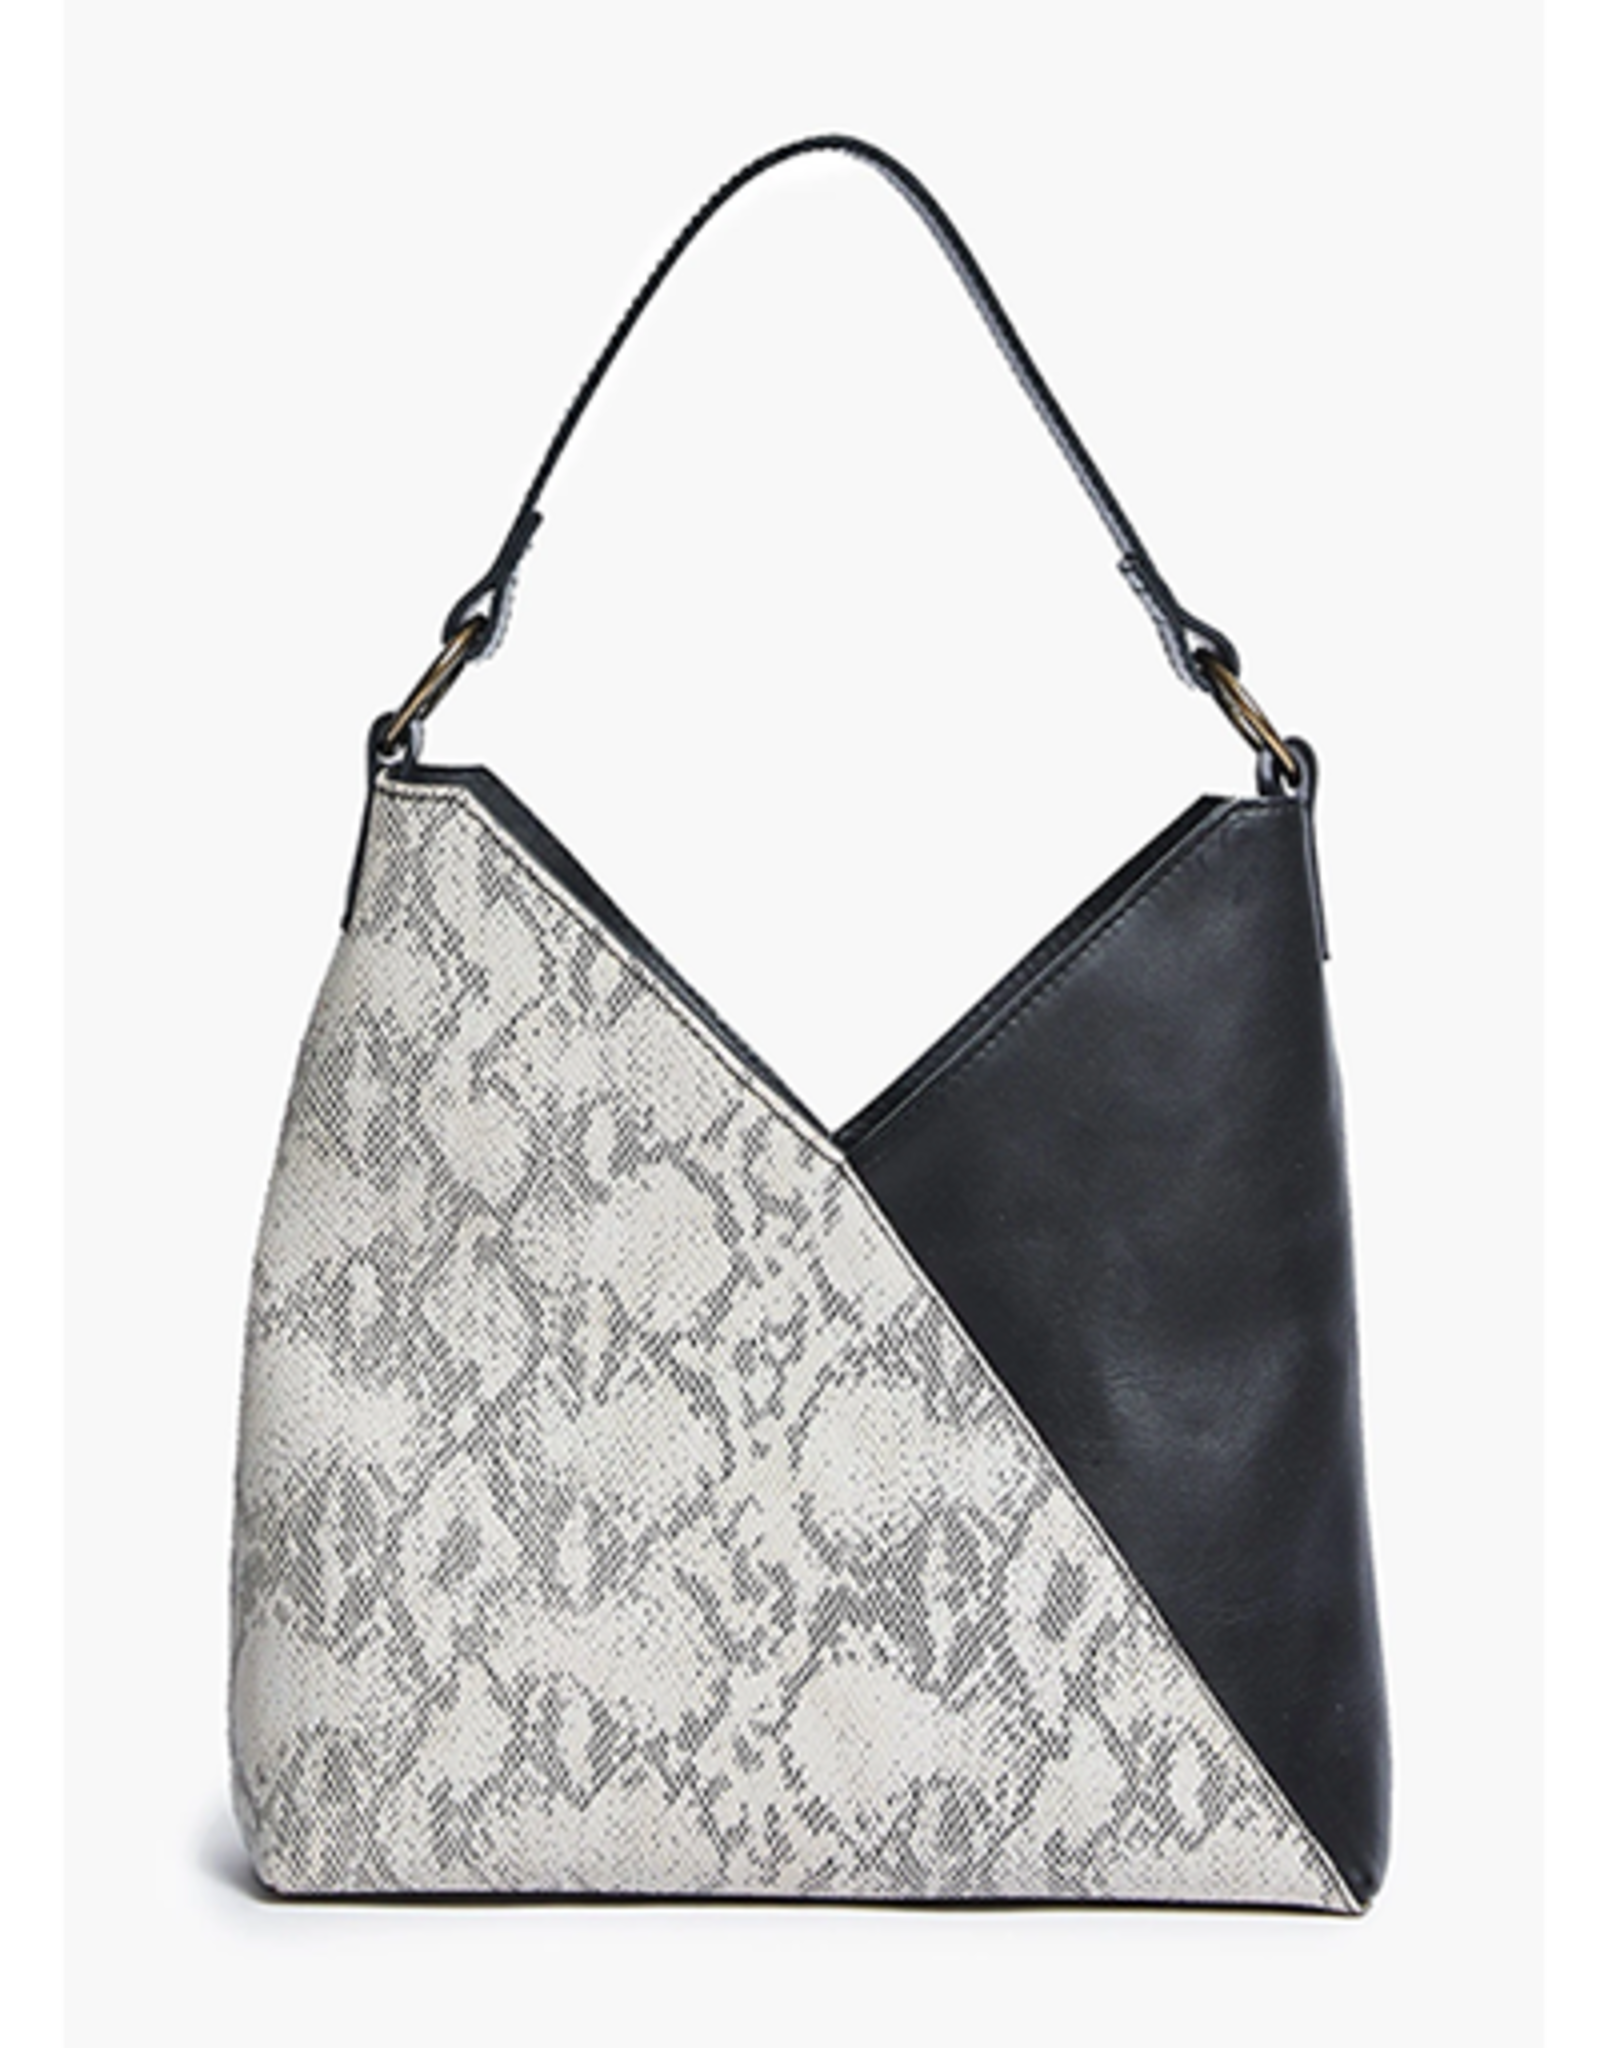 ABLE Solome Shoulder Bag: Black/Snake